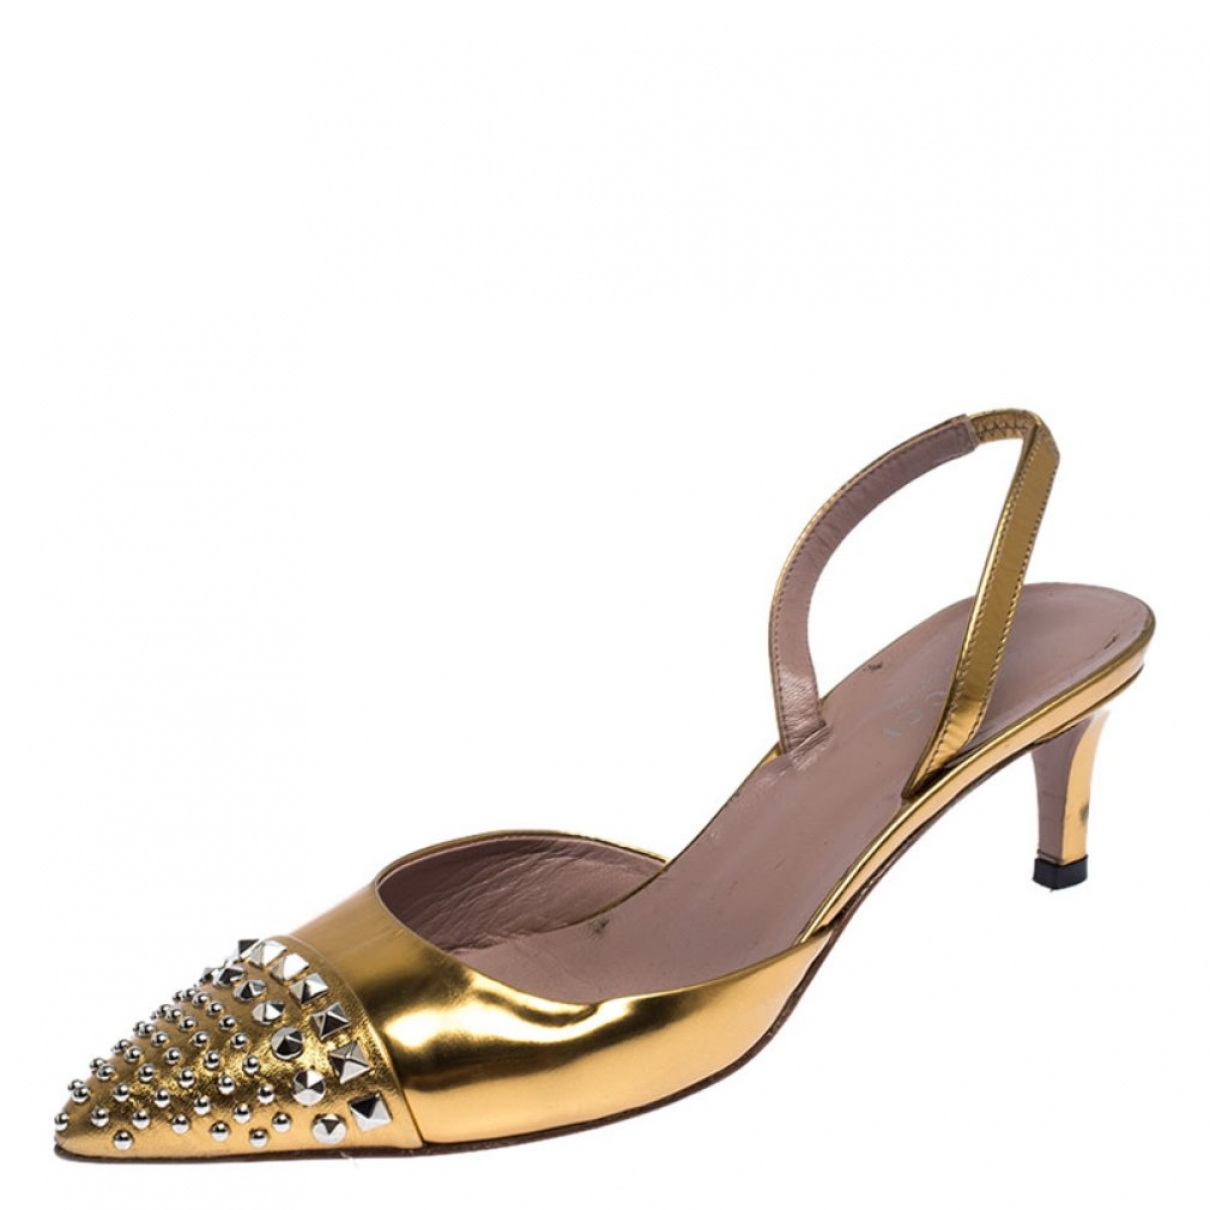 Gucci \N Gold Patent leather Heels for Women 36 EU